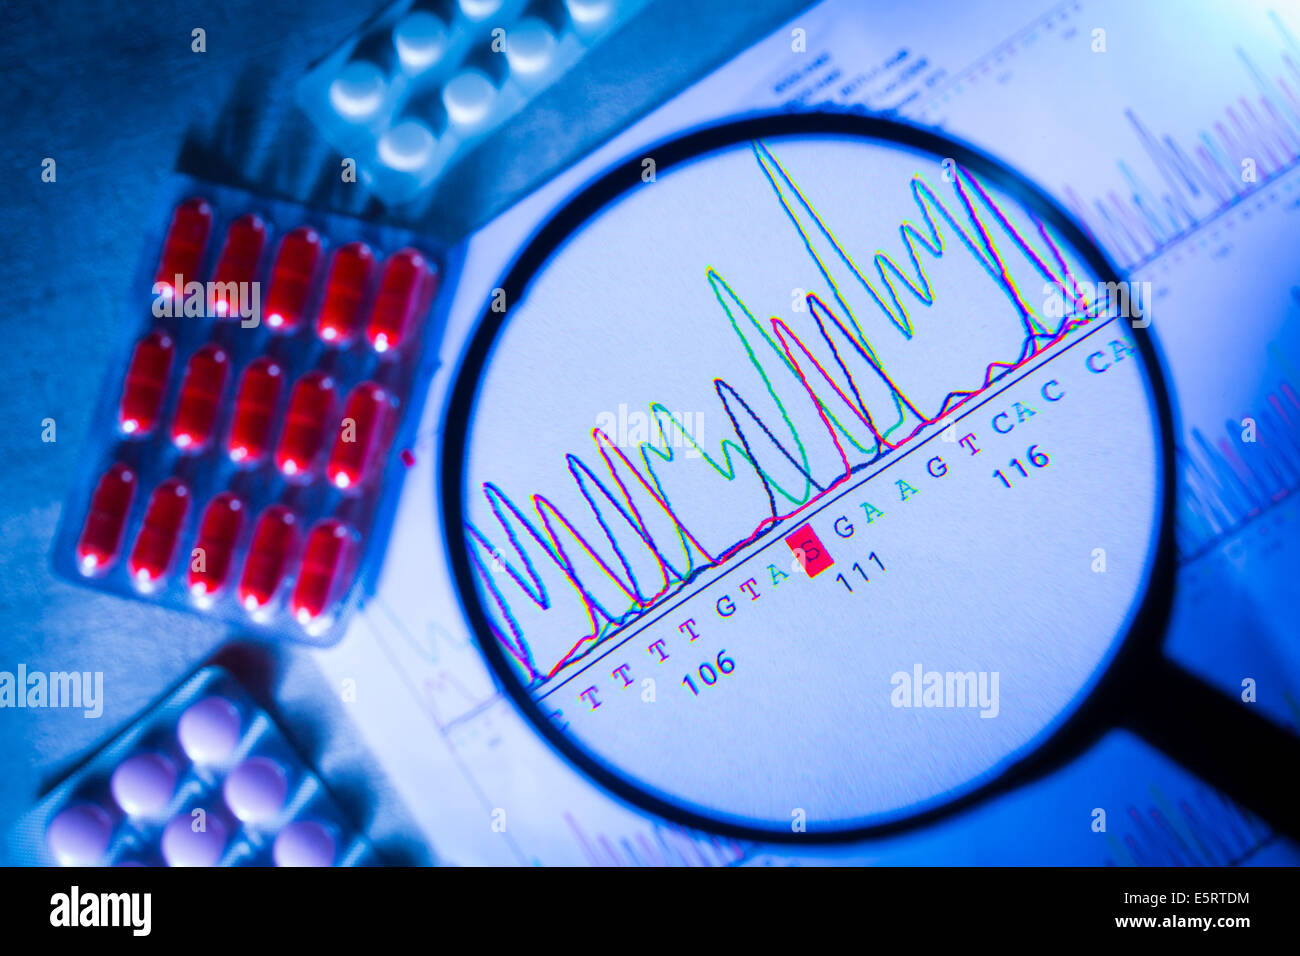 Magnifying glass over graphs showing the results of DNA (deoxyribonucleic acid) sequencing. - Stock Image